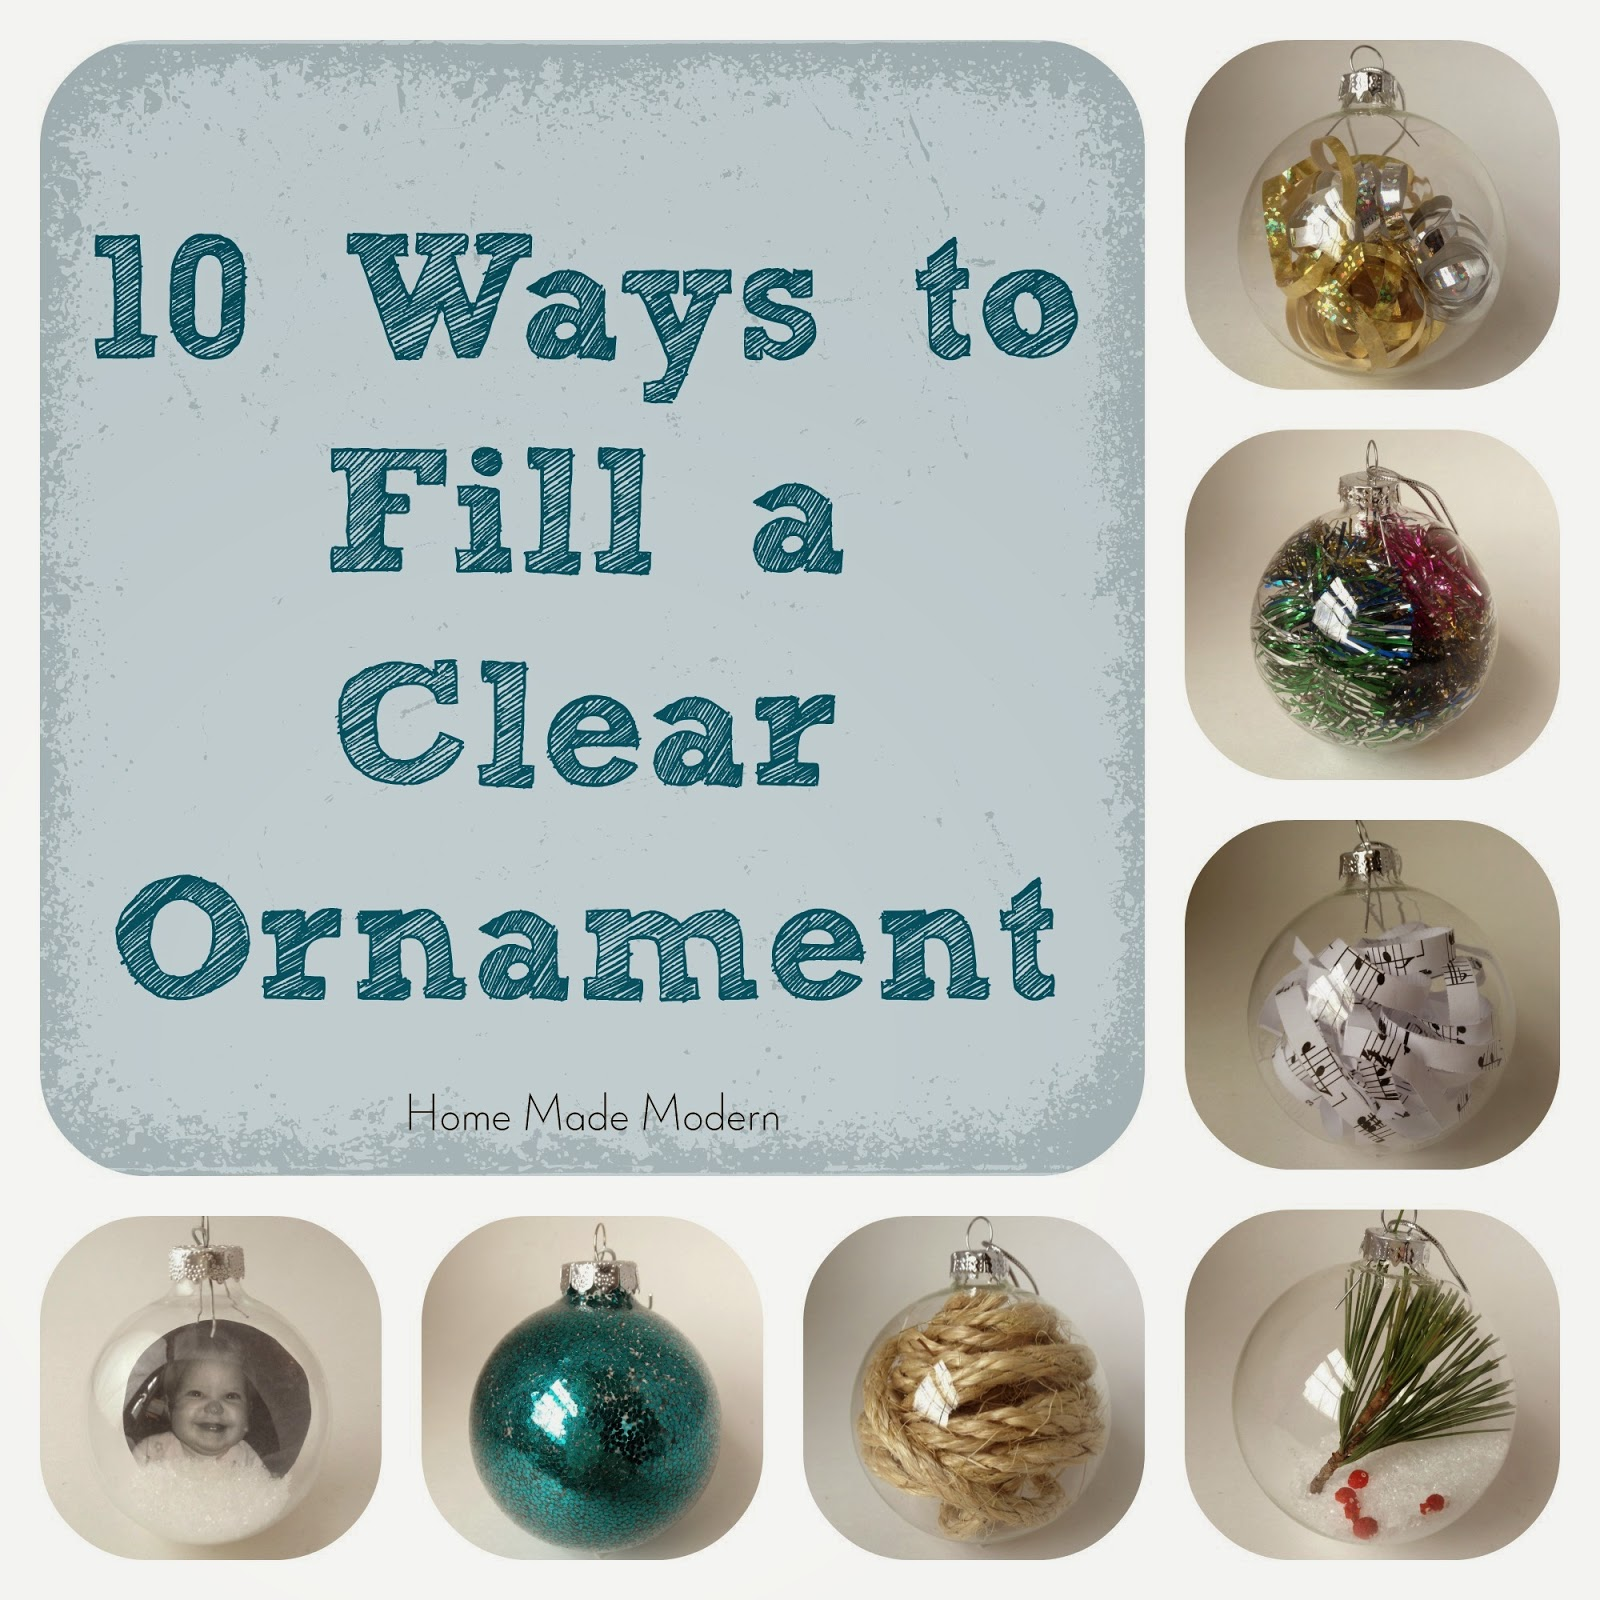 Home made modern how to make personalized christmas ornaments for Christmas ornament ideas